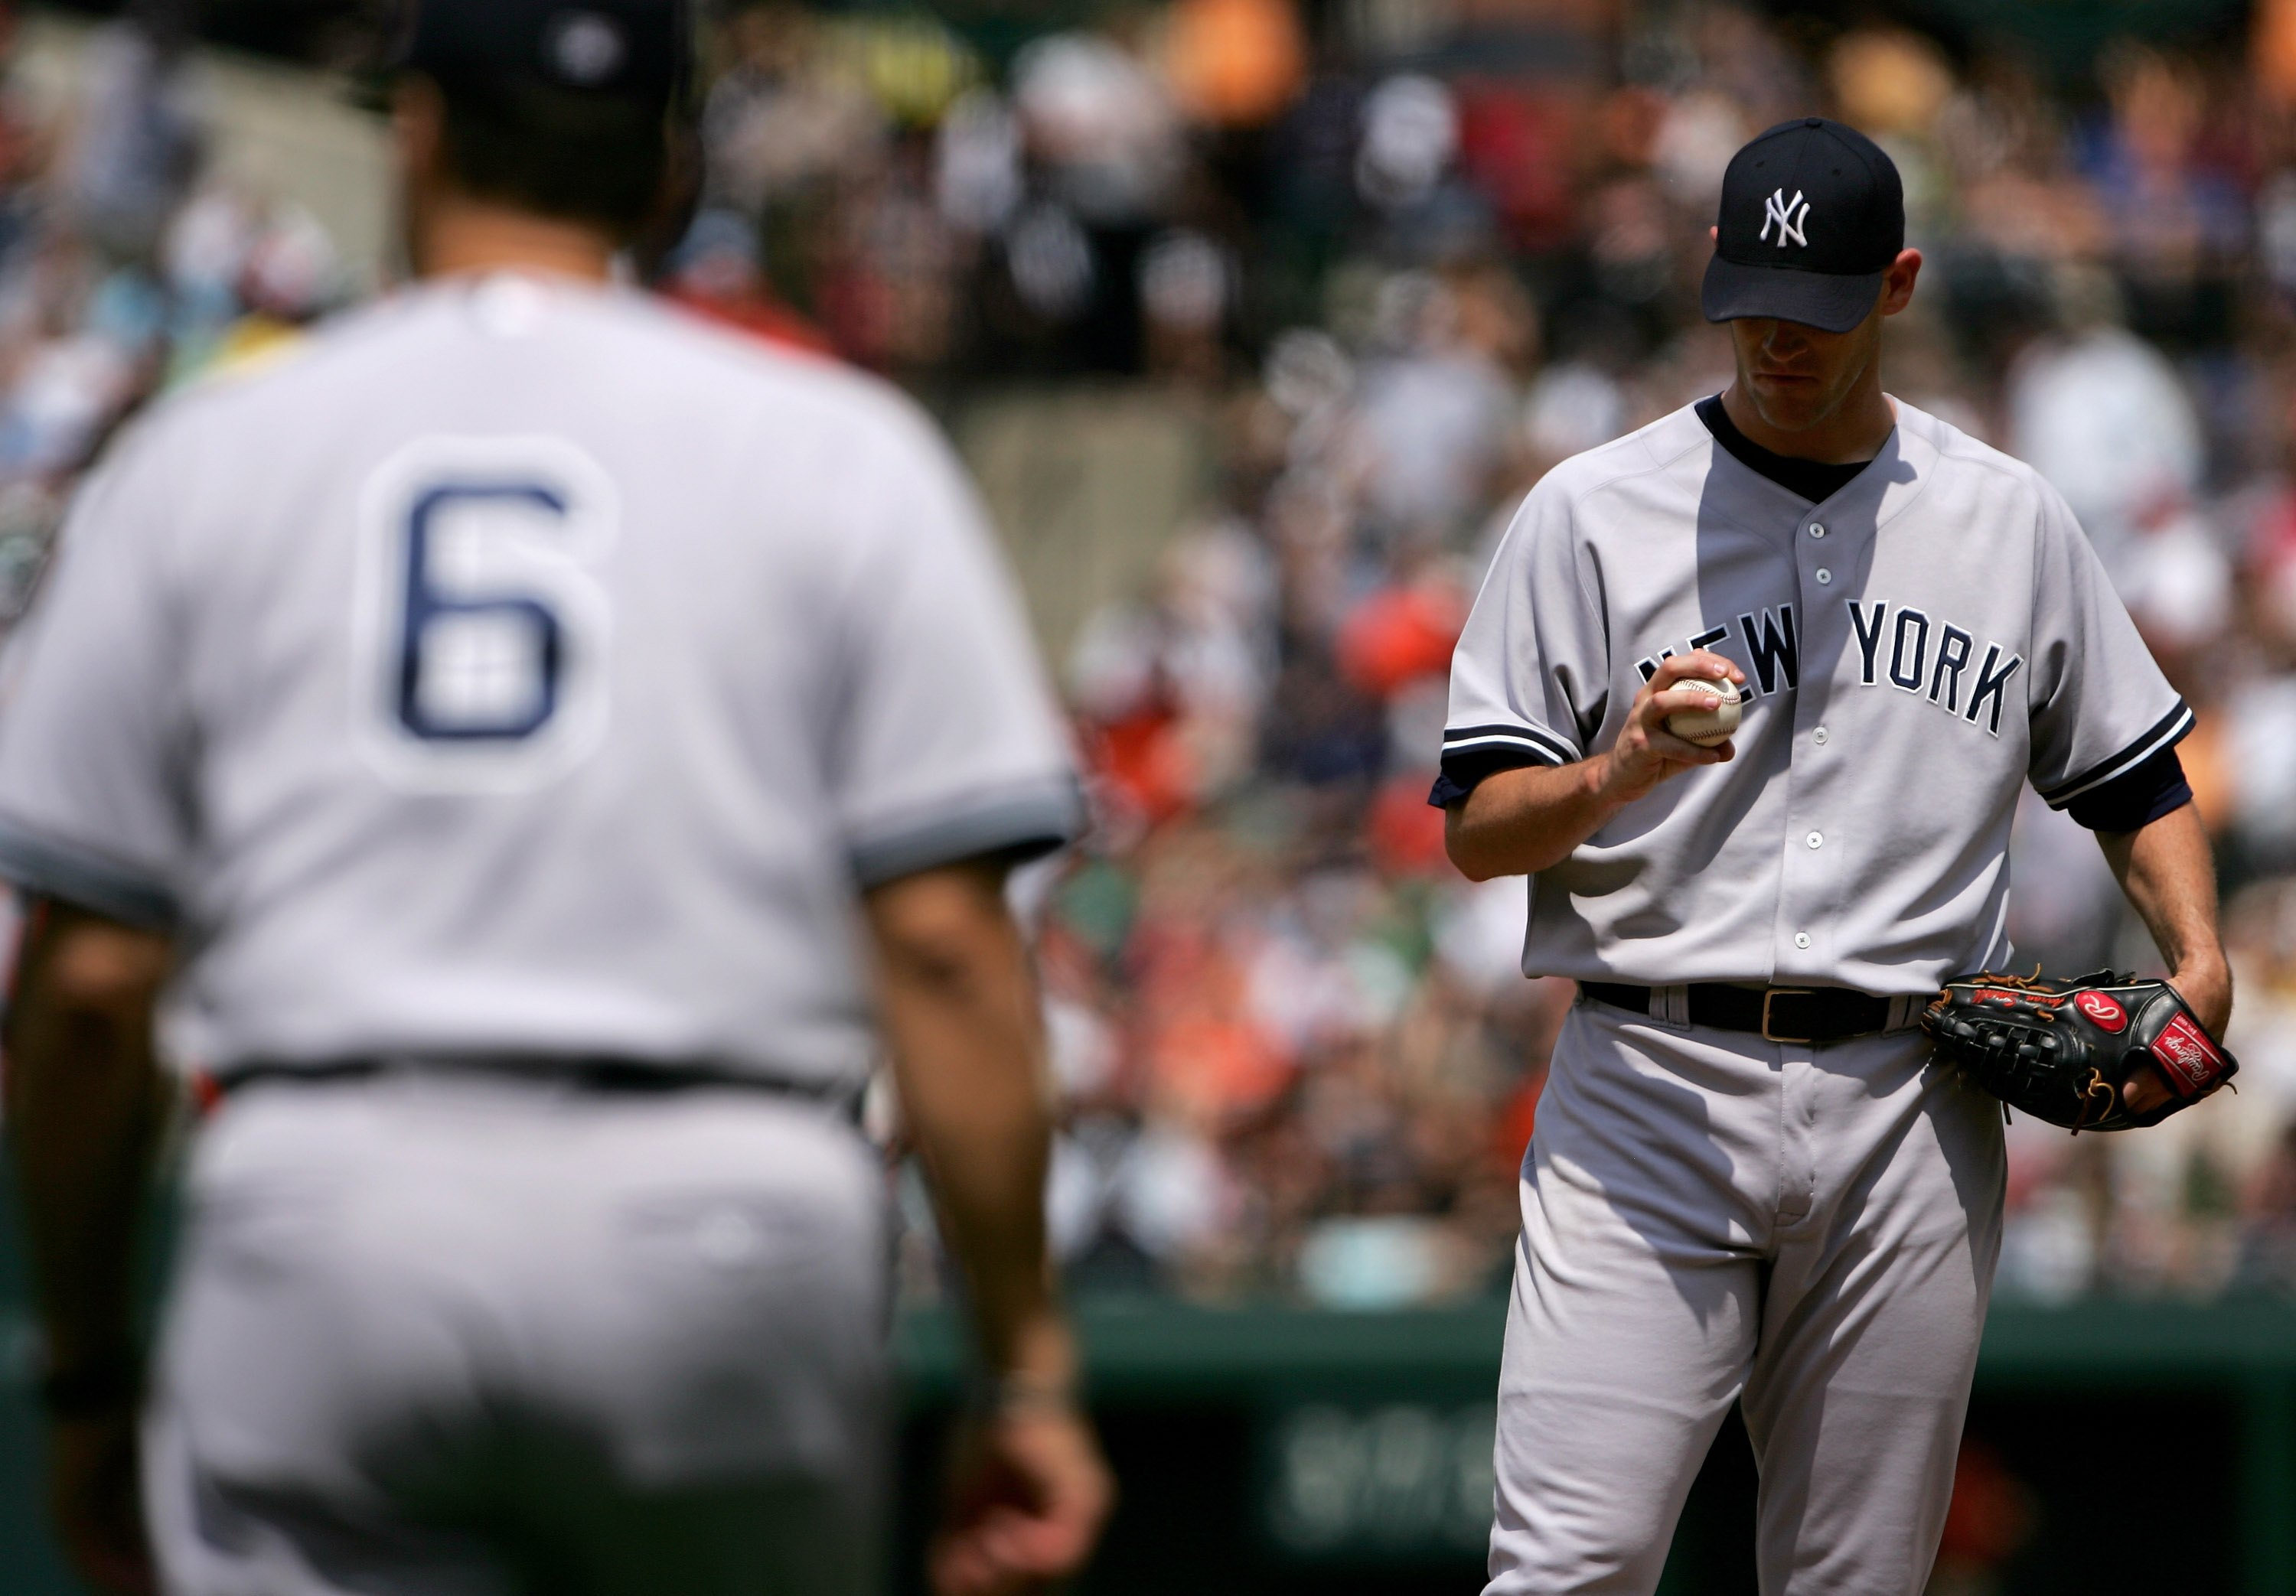 BALTIMORE - JUNE 04:  Starting pitcher Aaron Small #31 of the New York Yankees waits to be pulled by manager Joe Torre #6 in the third inning against the Baltimore Orioles at Oriole Park at Camden Yards on June 4, 2006 in Baltimore, Maryland. The Orioles